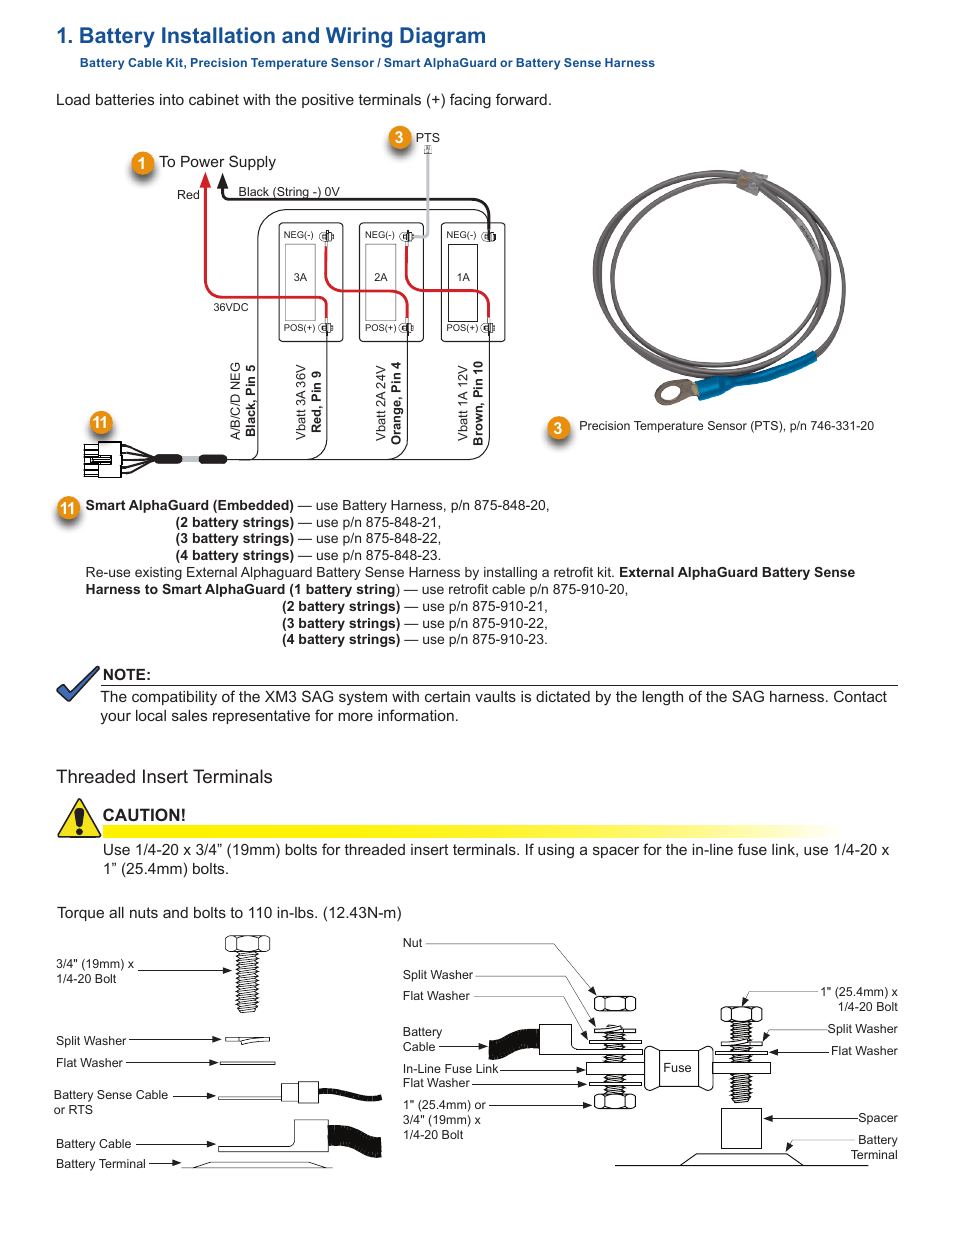 hight resolution of battery installation and wiring diagram threaded insert terminalsbattery installation and wiring diagram threaded insert